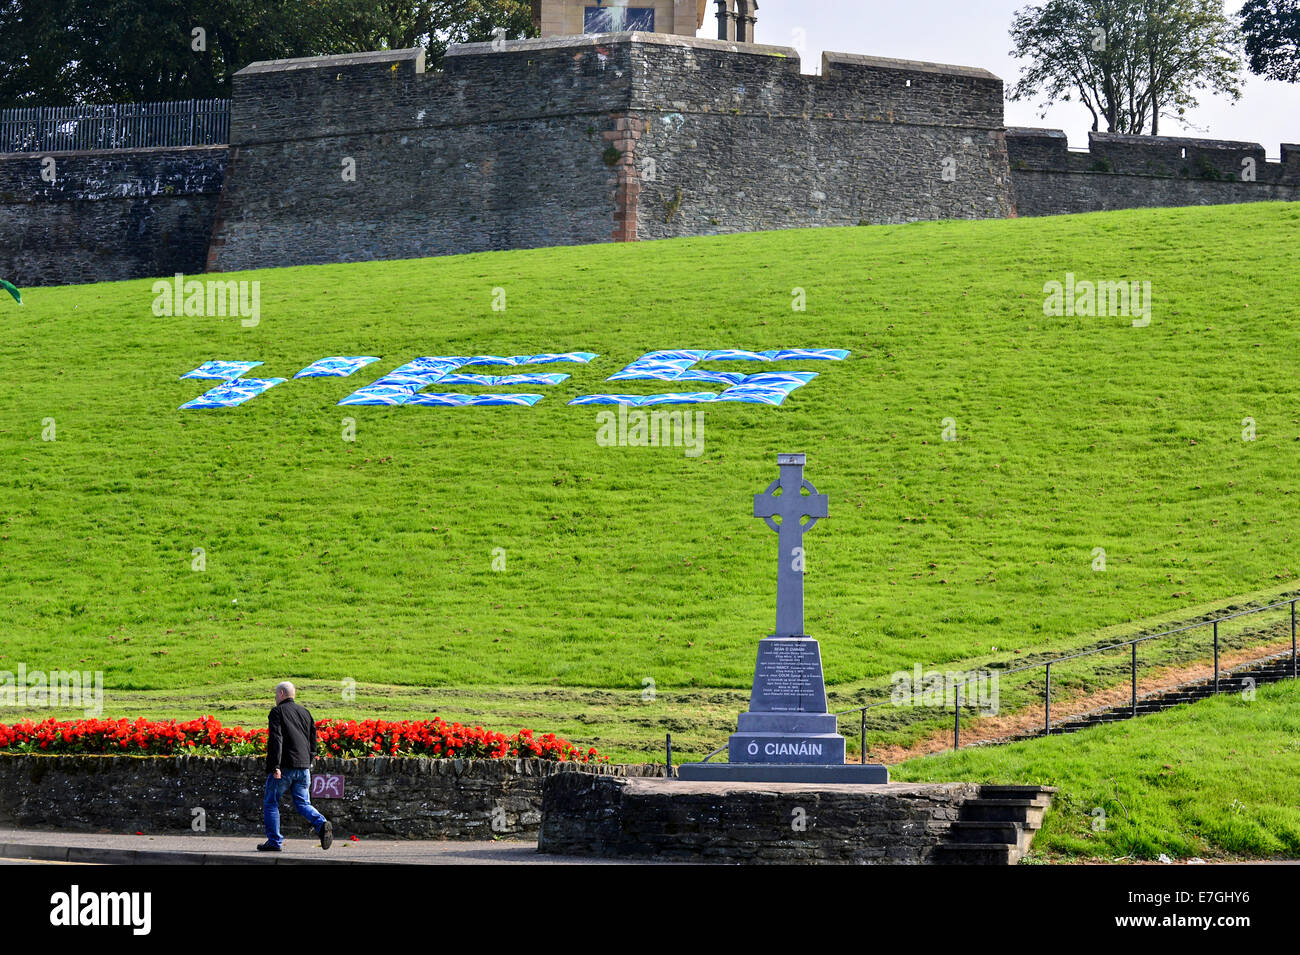 Derry, Londonderry, UK. 17th September, 2014. Support in Bogside for Scottish Yes vote, Derry, Londonderry, UK  - Stock Image